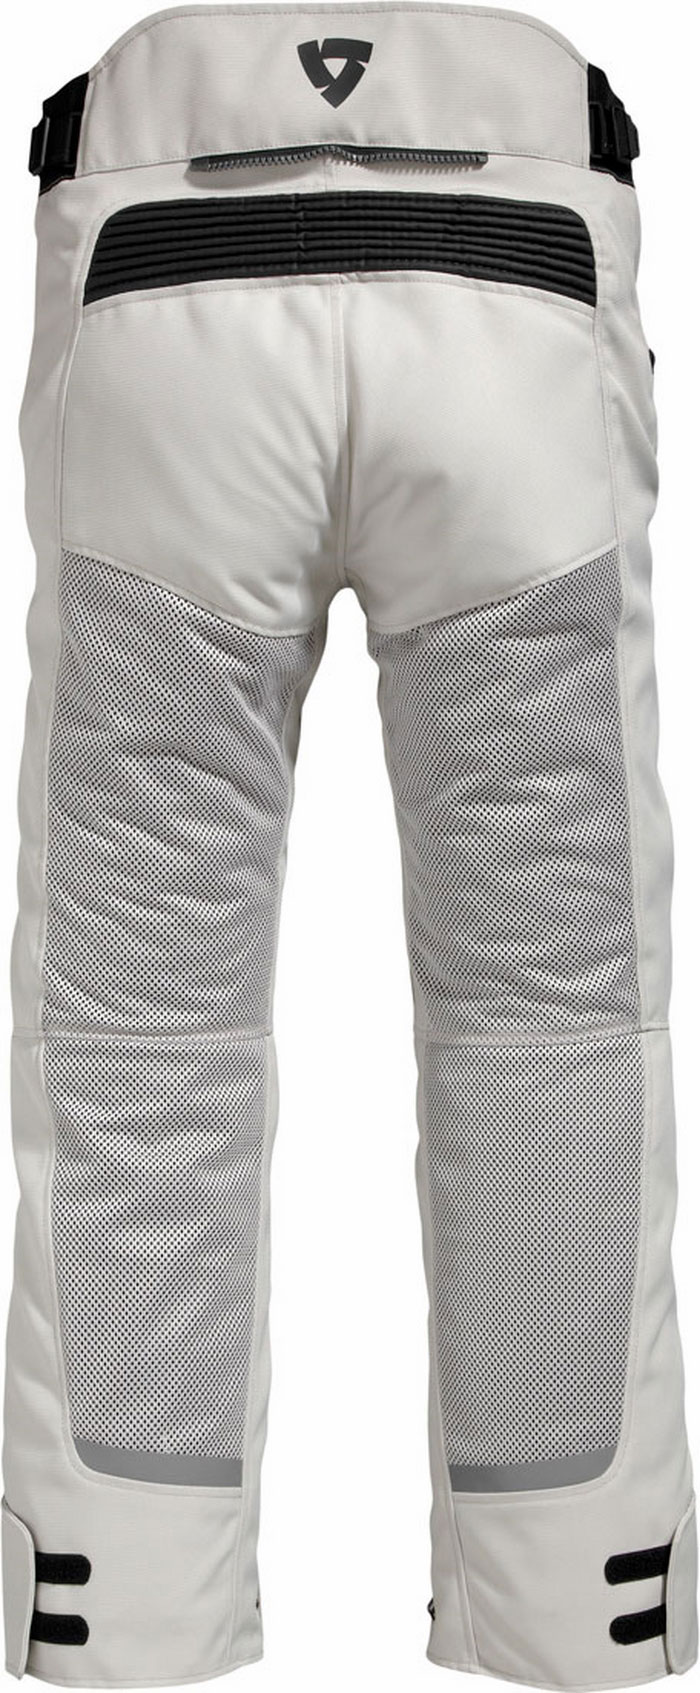 Pantaloni moto Rev'it Tornado Argento